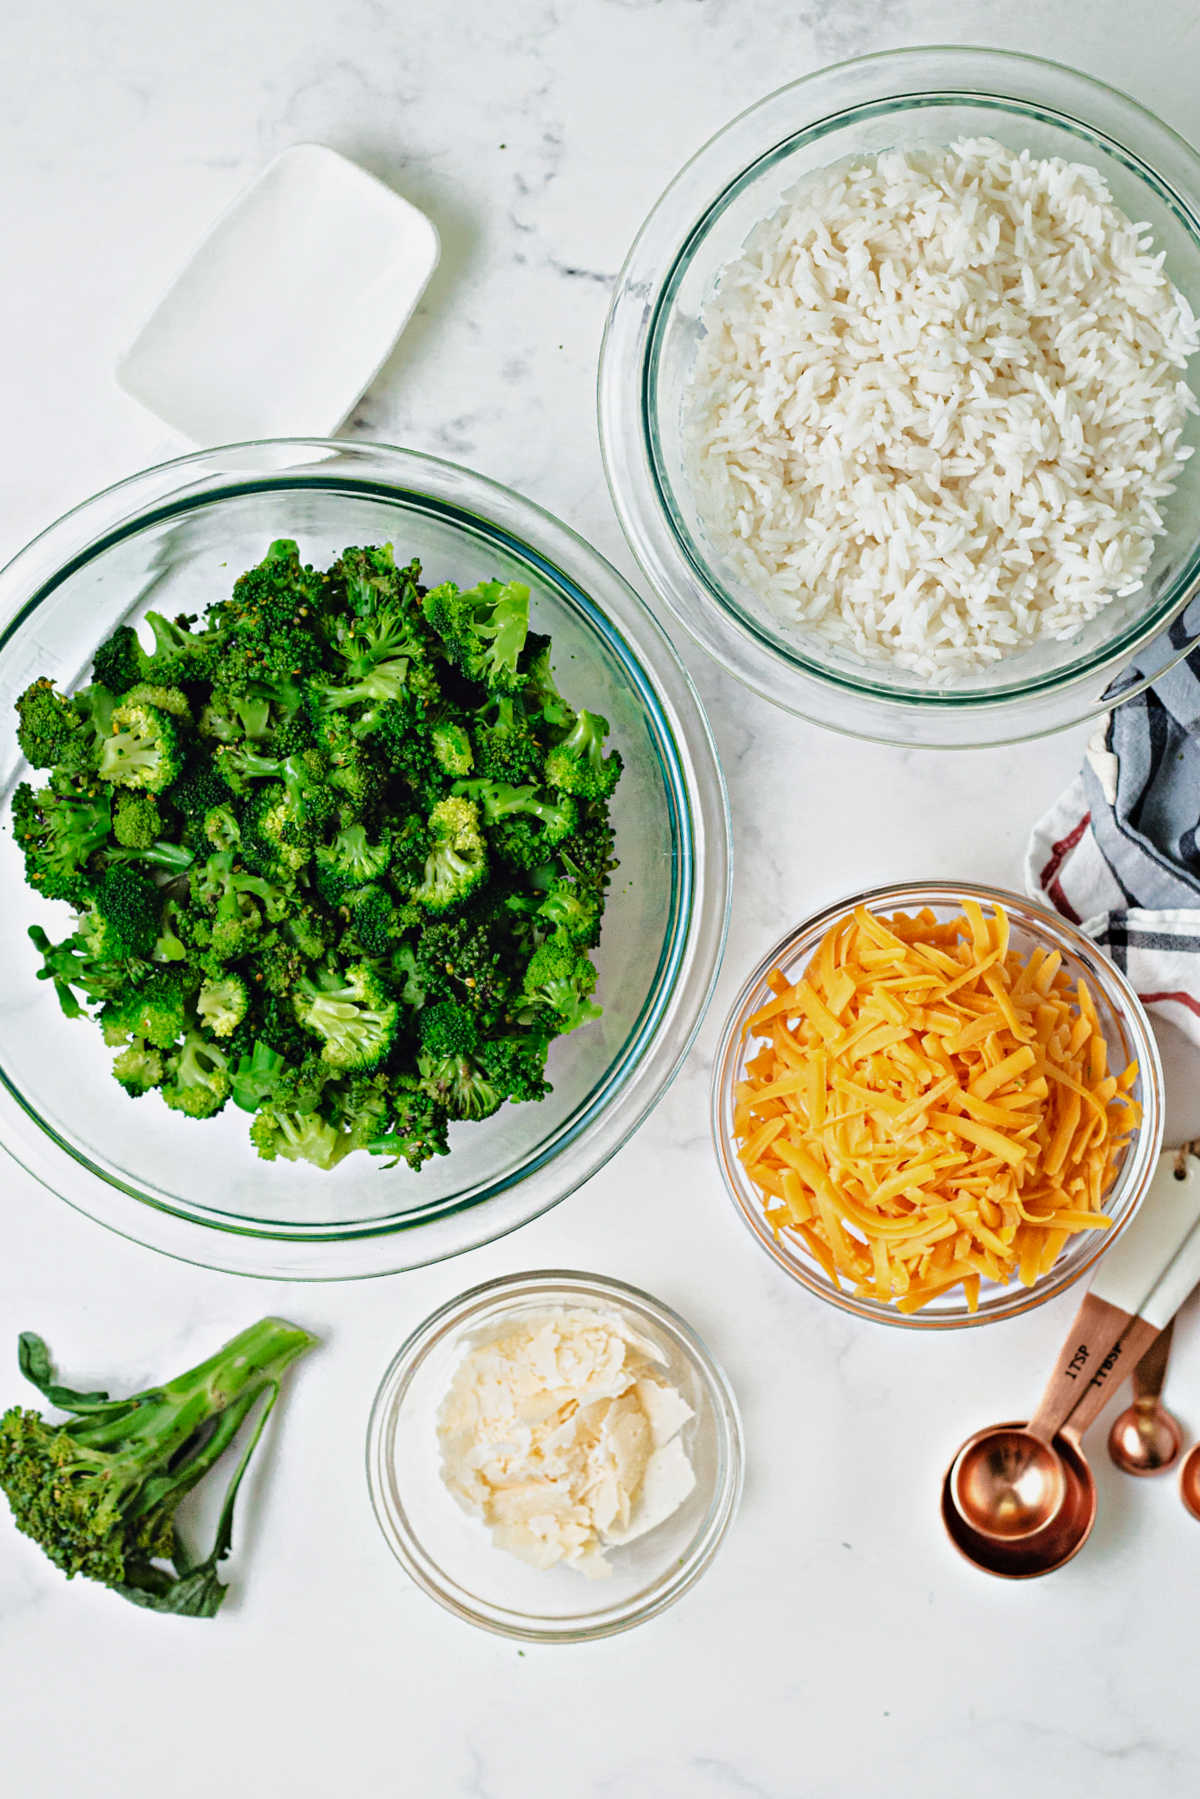 ingredients for a casserole: broccoli, rice, cheddar cheese, parmesan cheese.